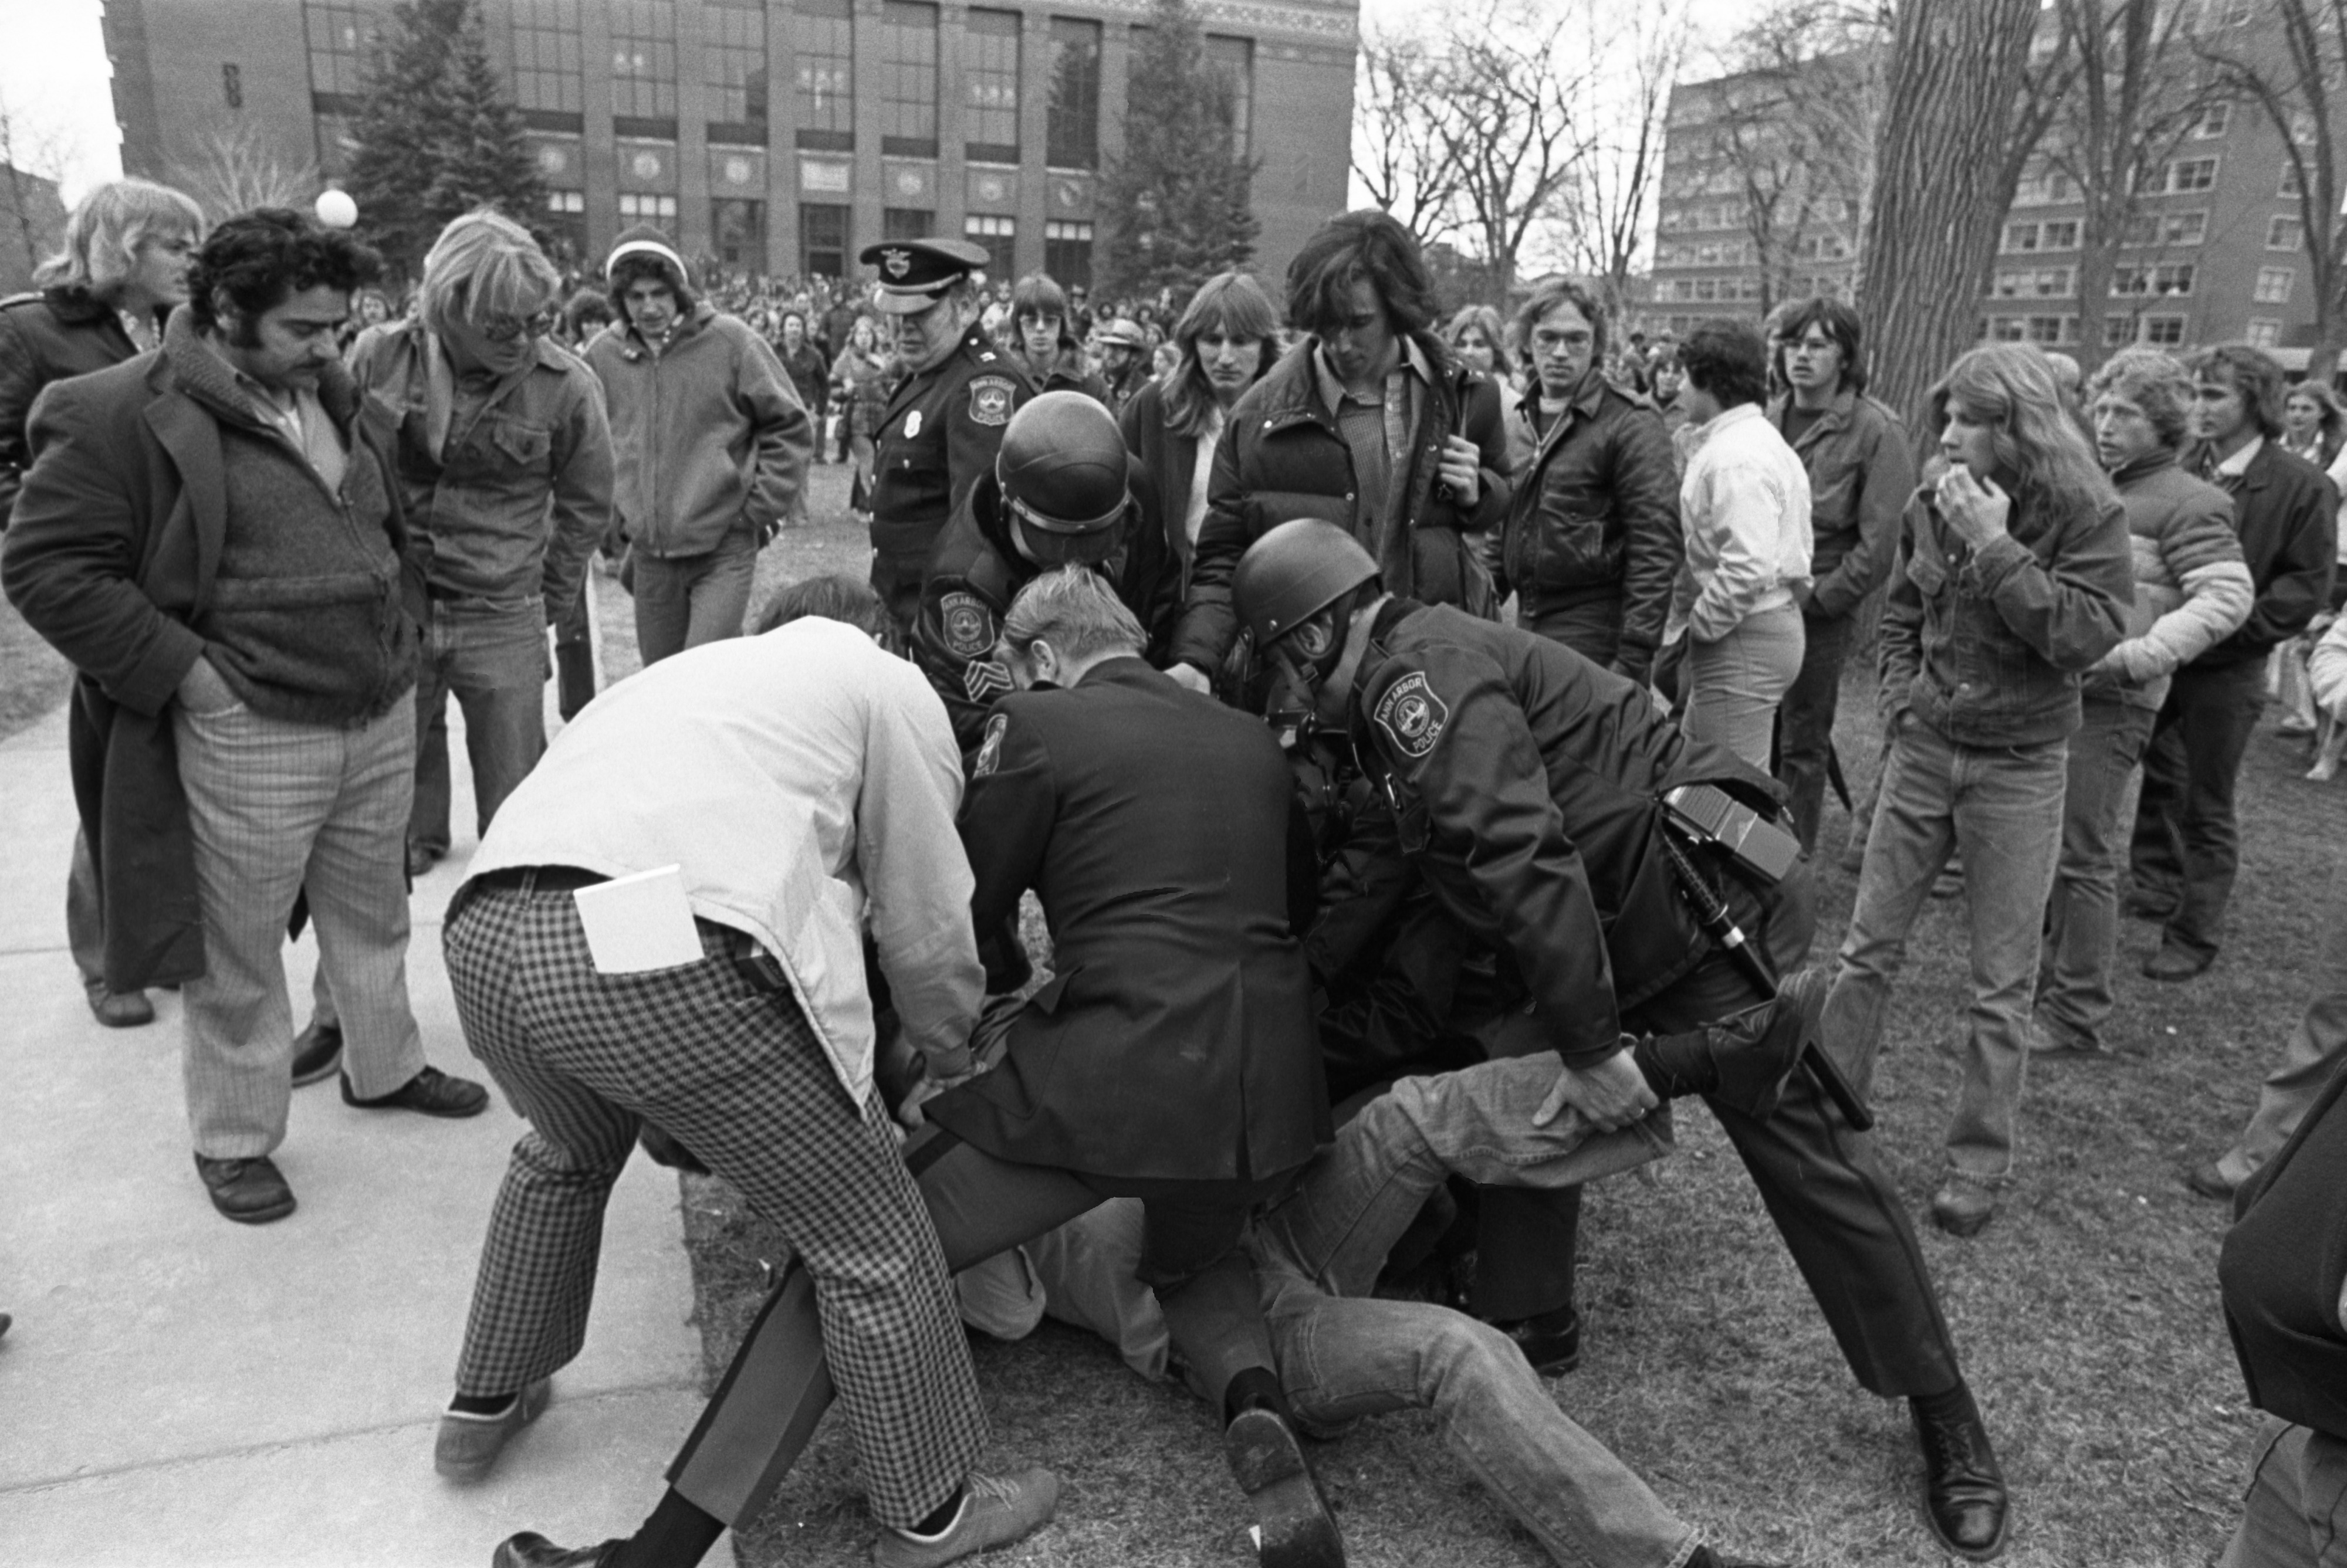 Police Scuffle With Hash Bash Attendee On Diag, April 2, 1977 image